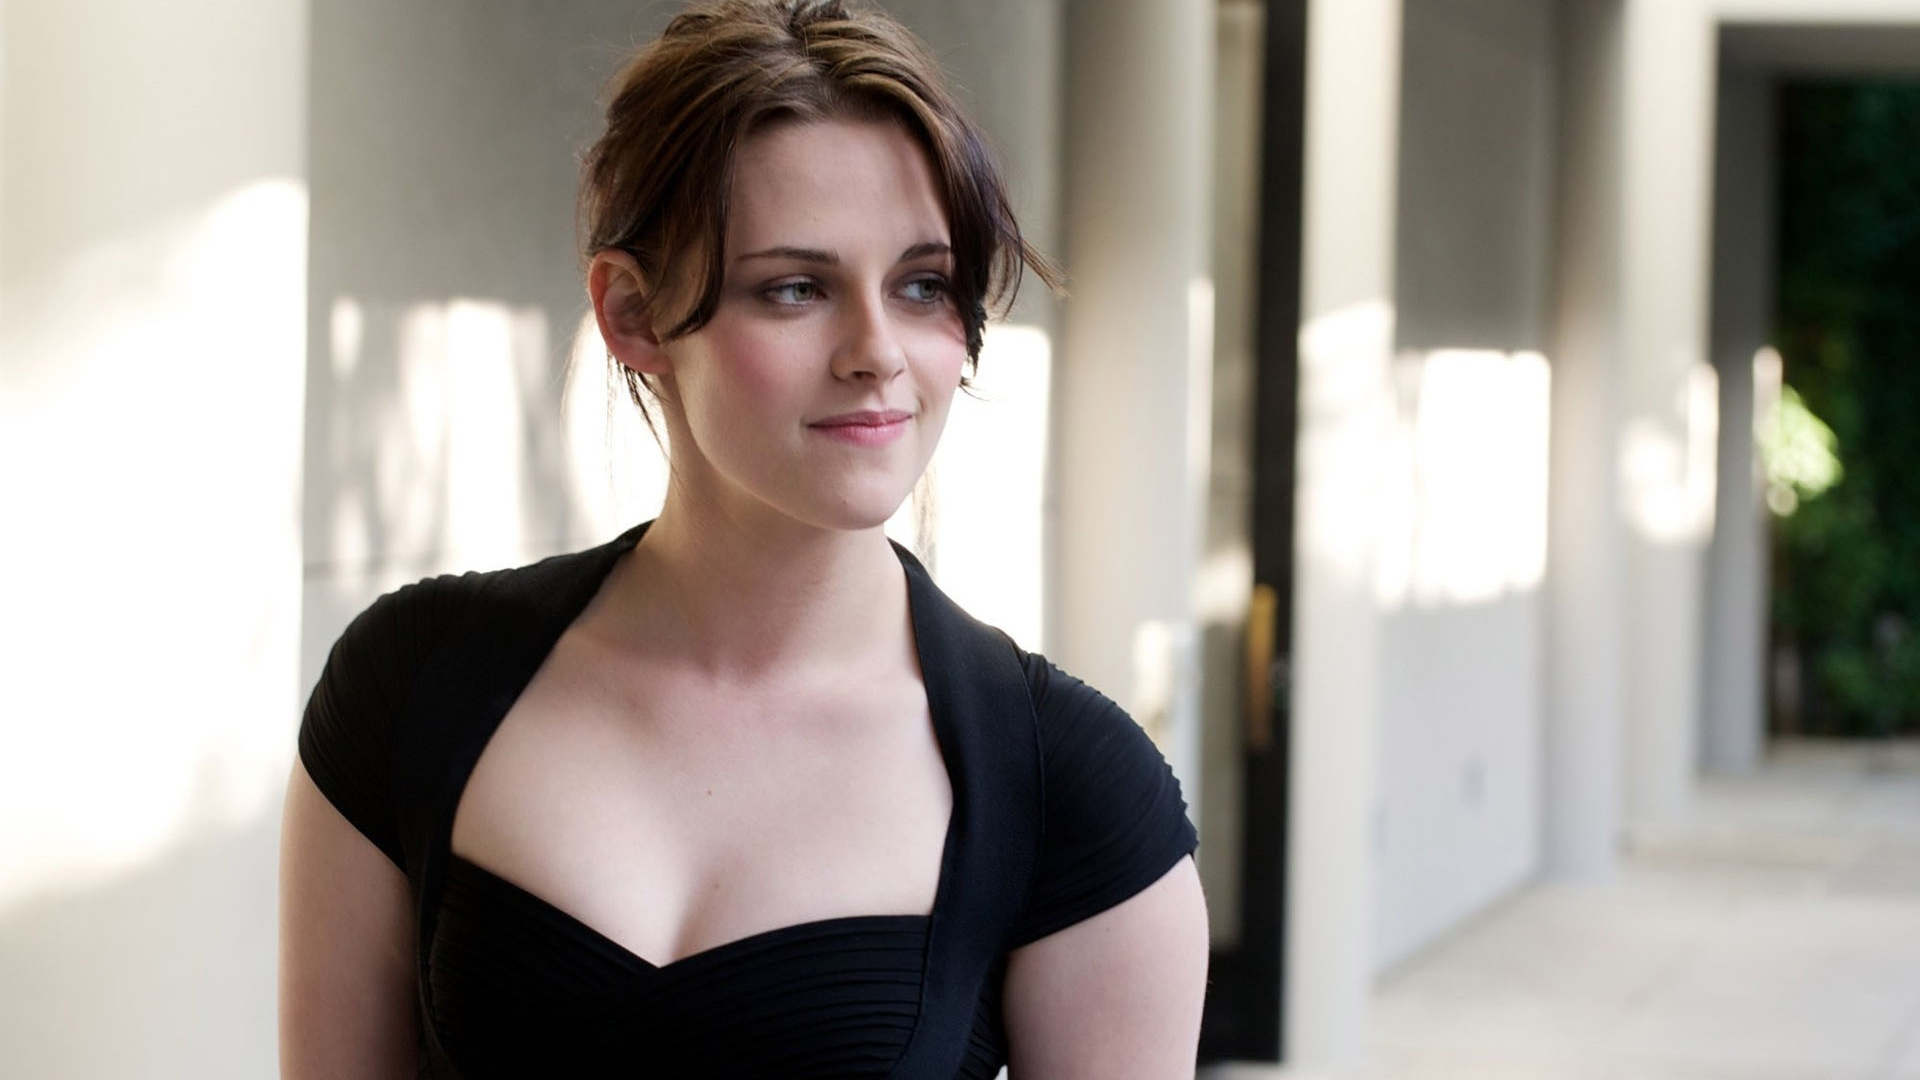 kristen stewart wallpapers hd A42